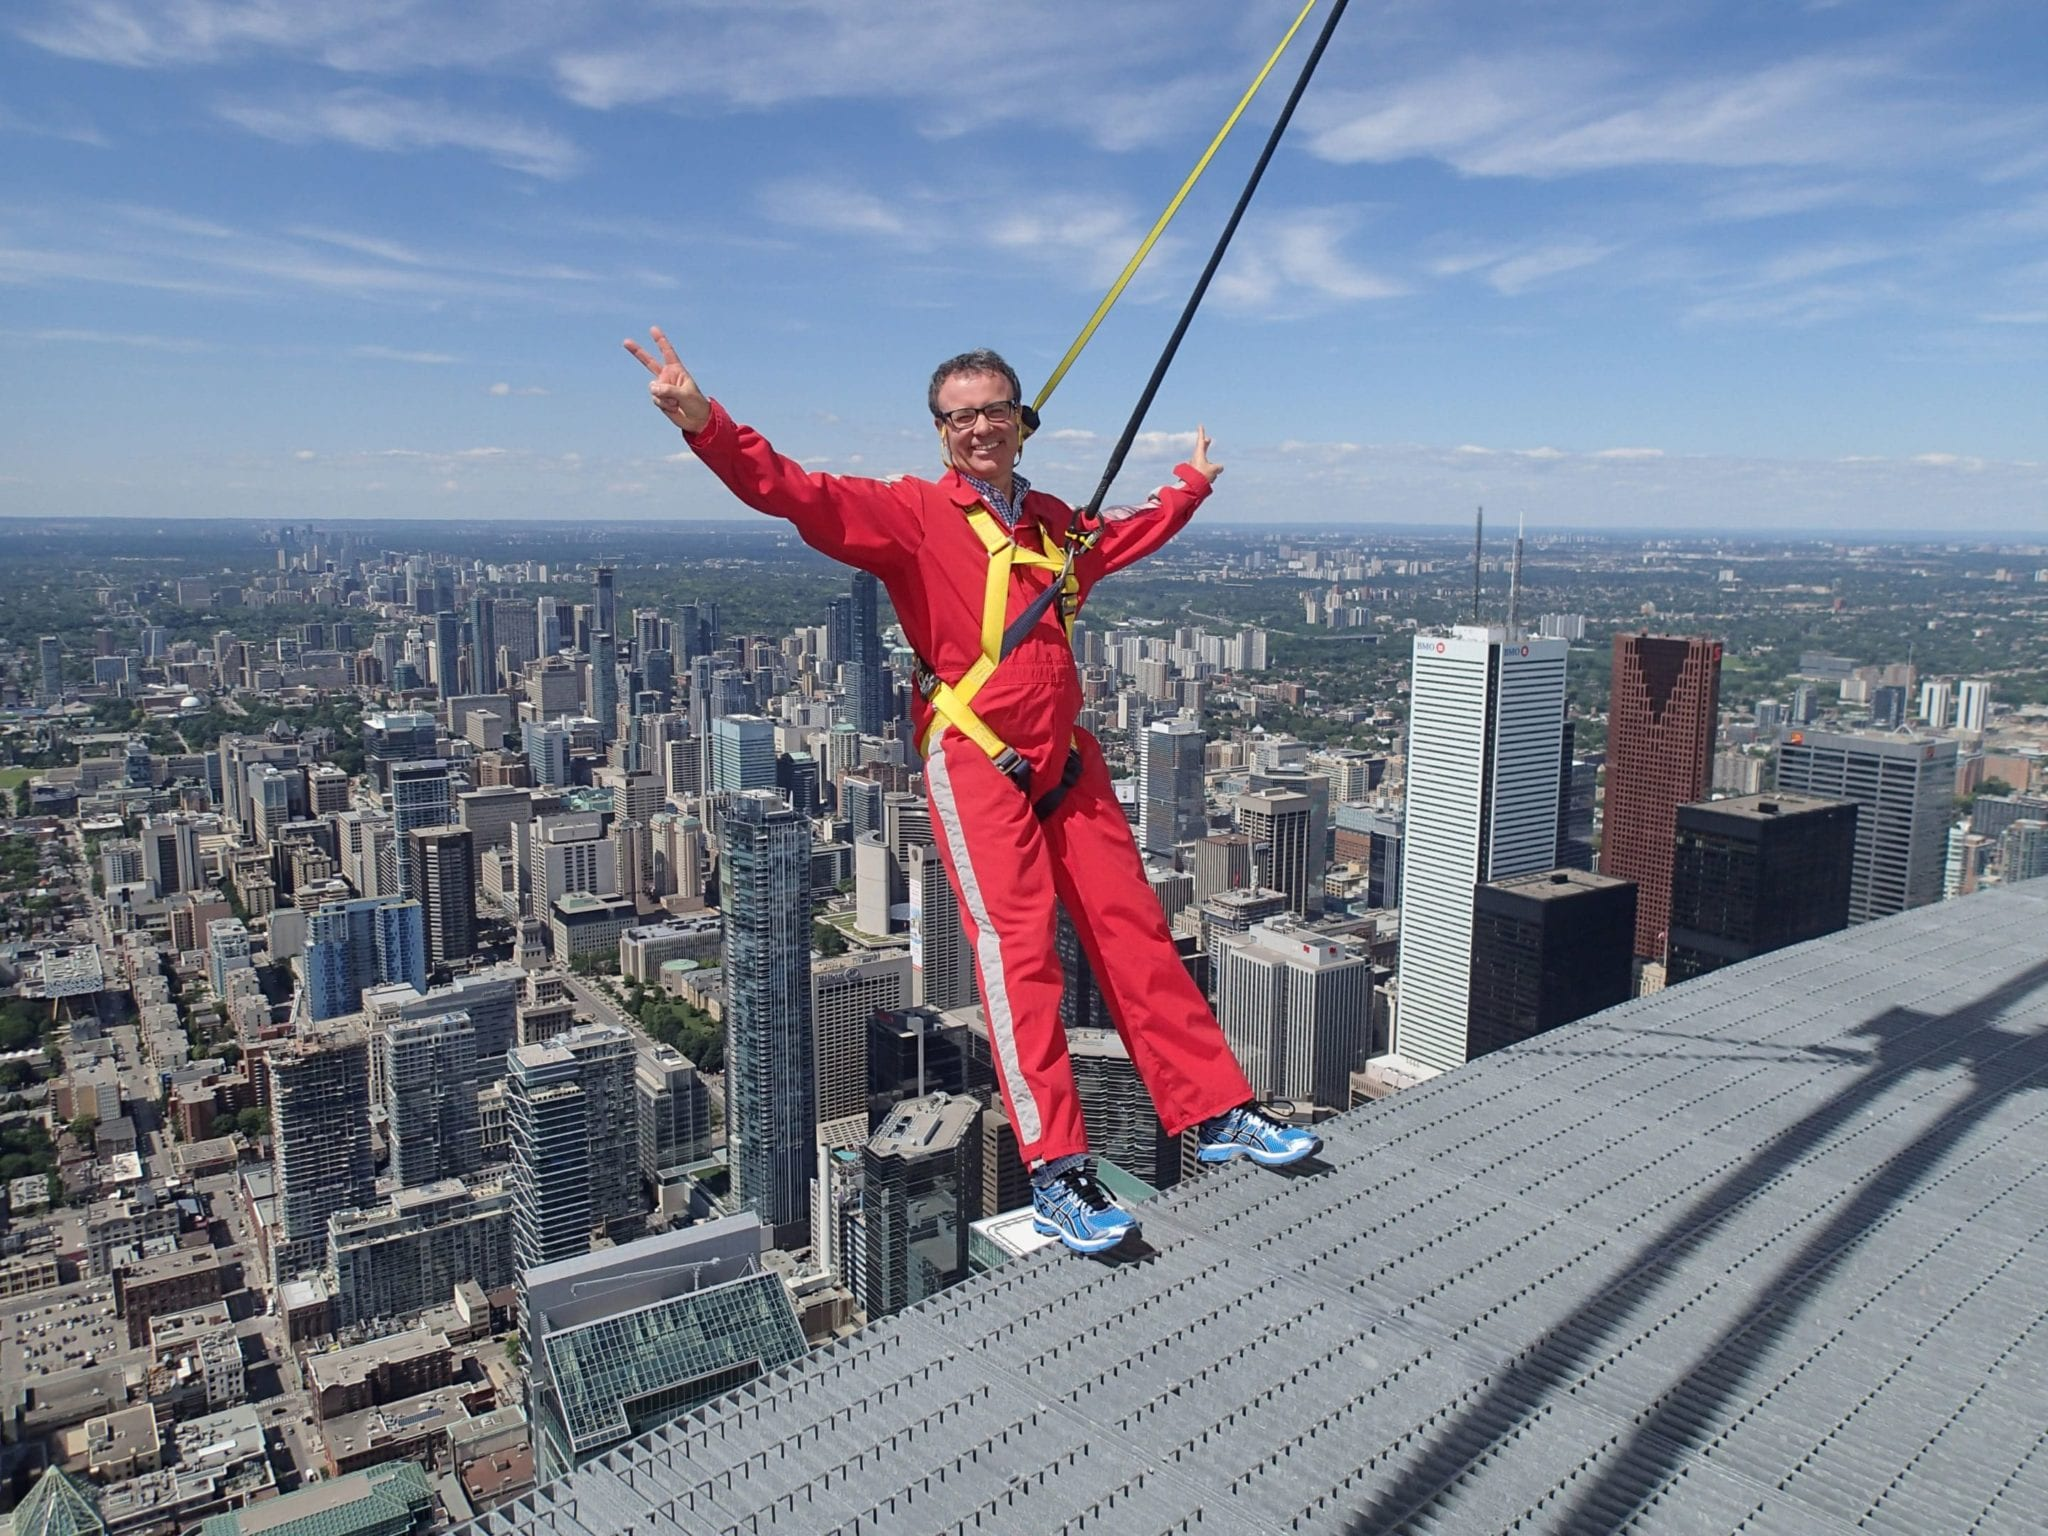 Tim Collins shows no fear at the EdgeWalk